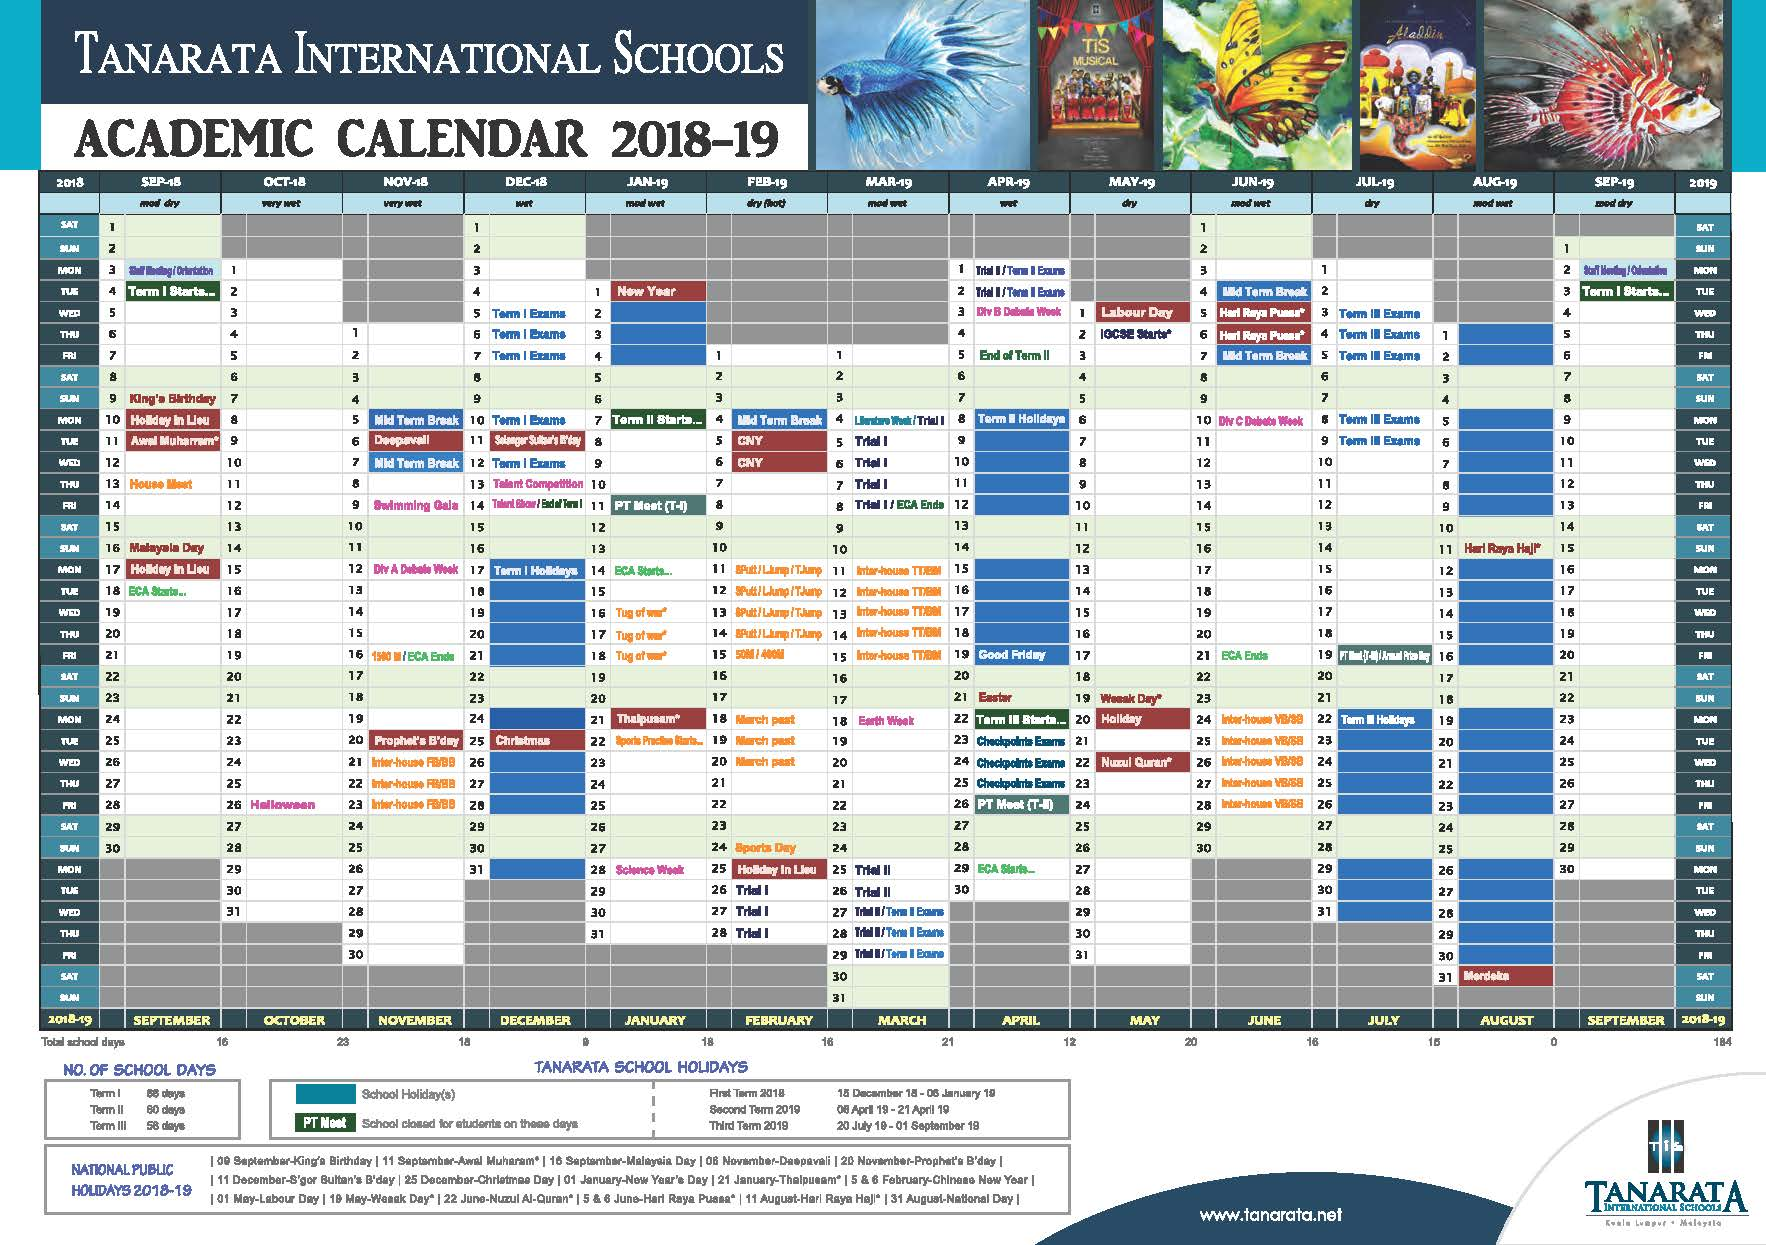 TiS Academic Calendar 2018 19 outlined